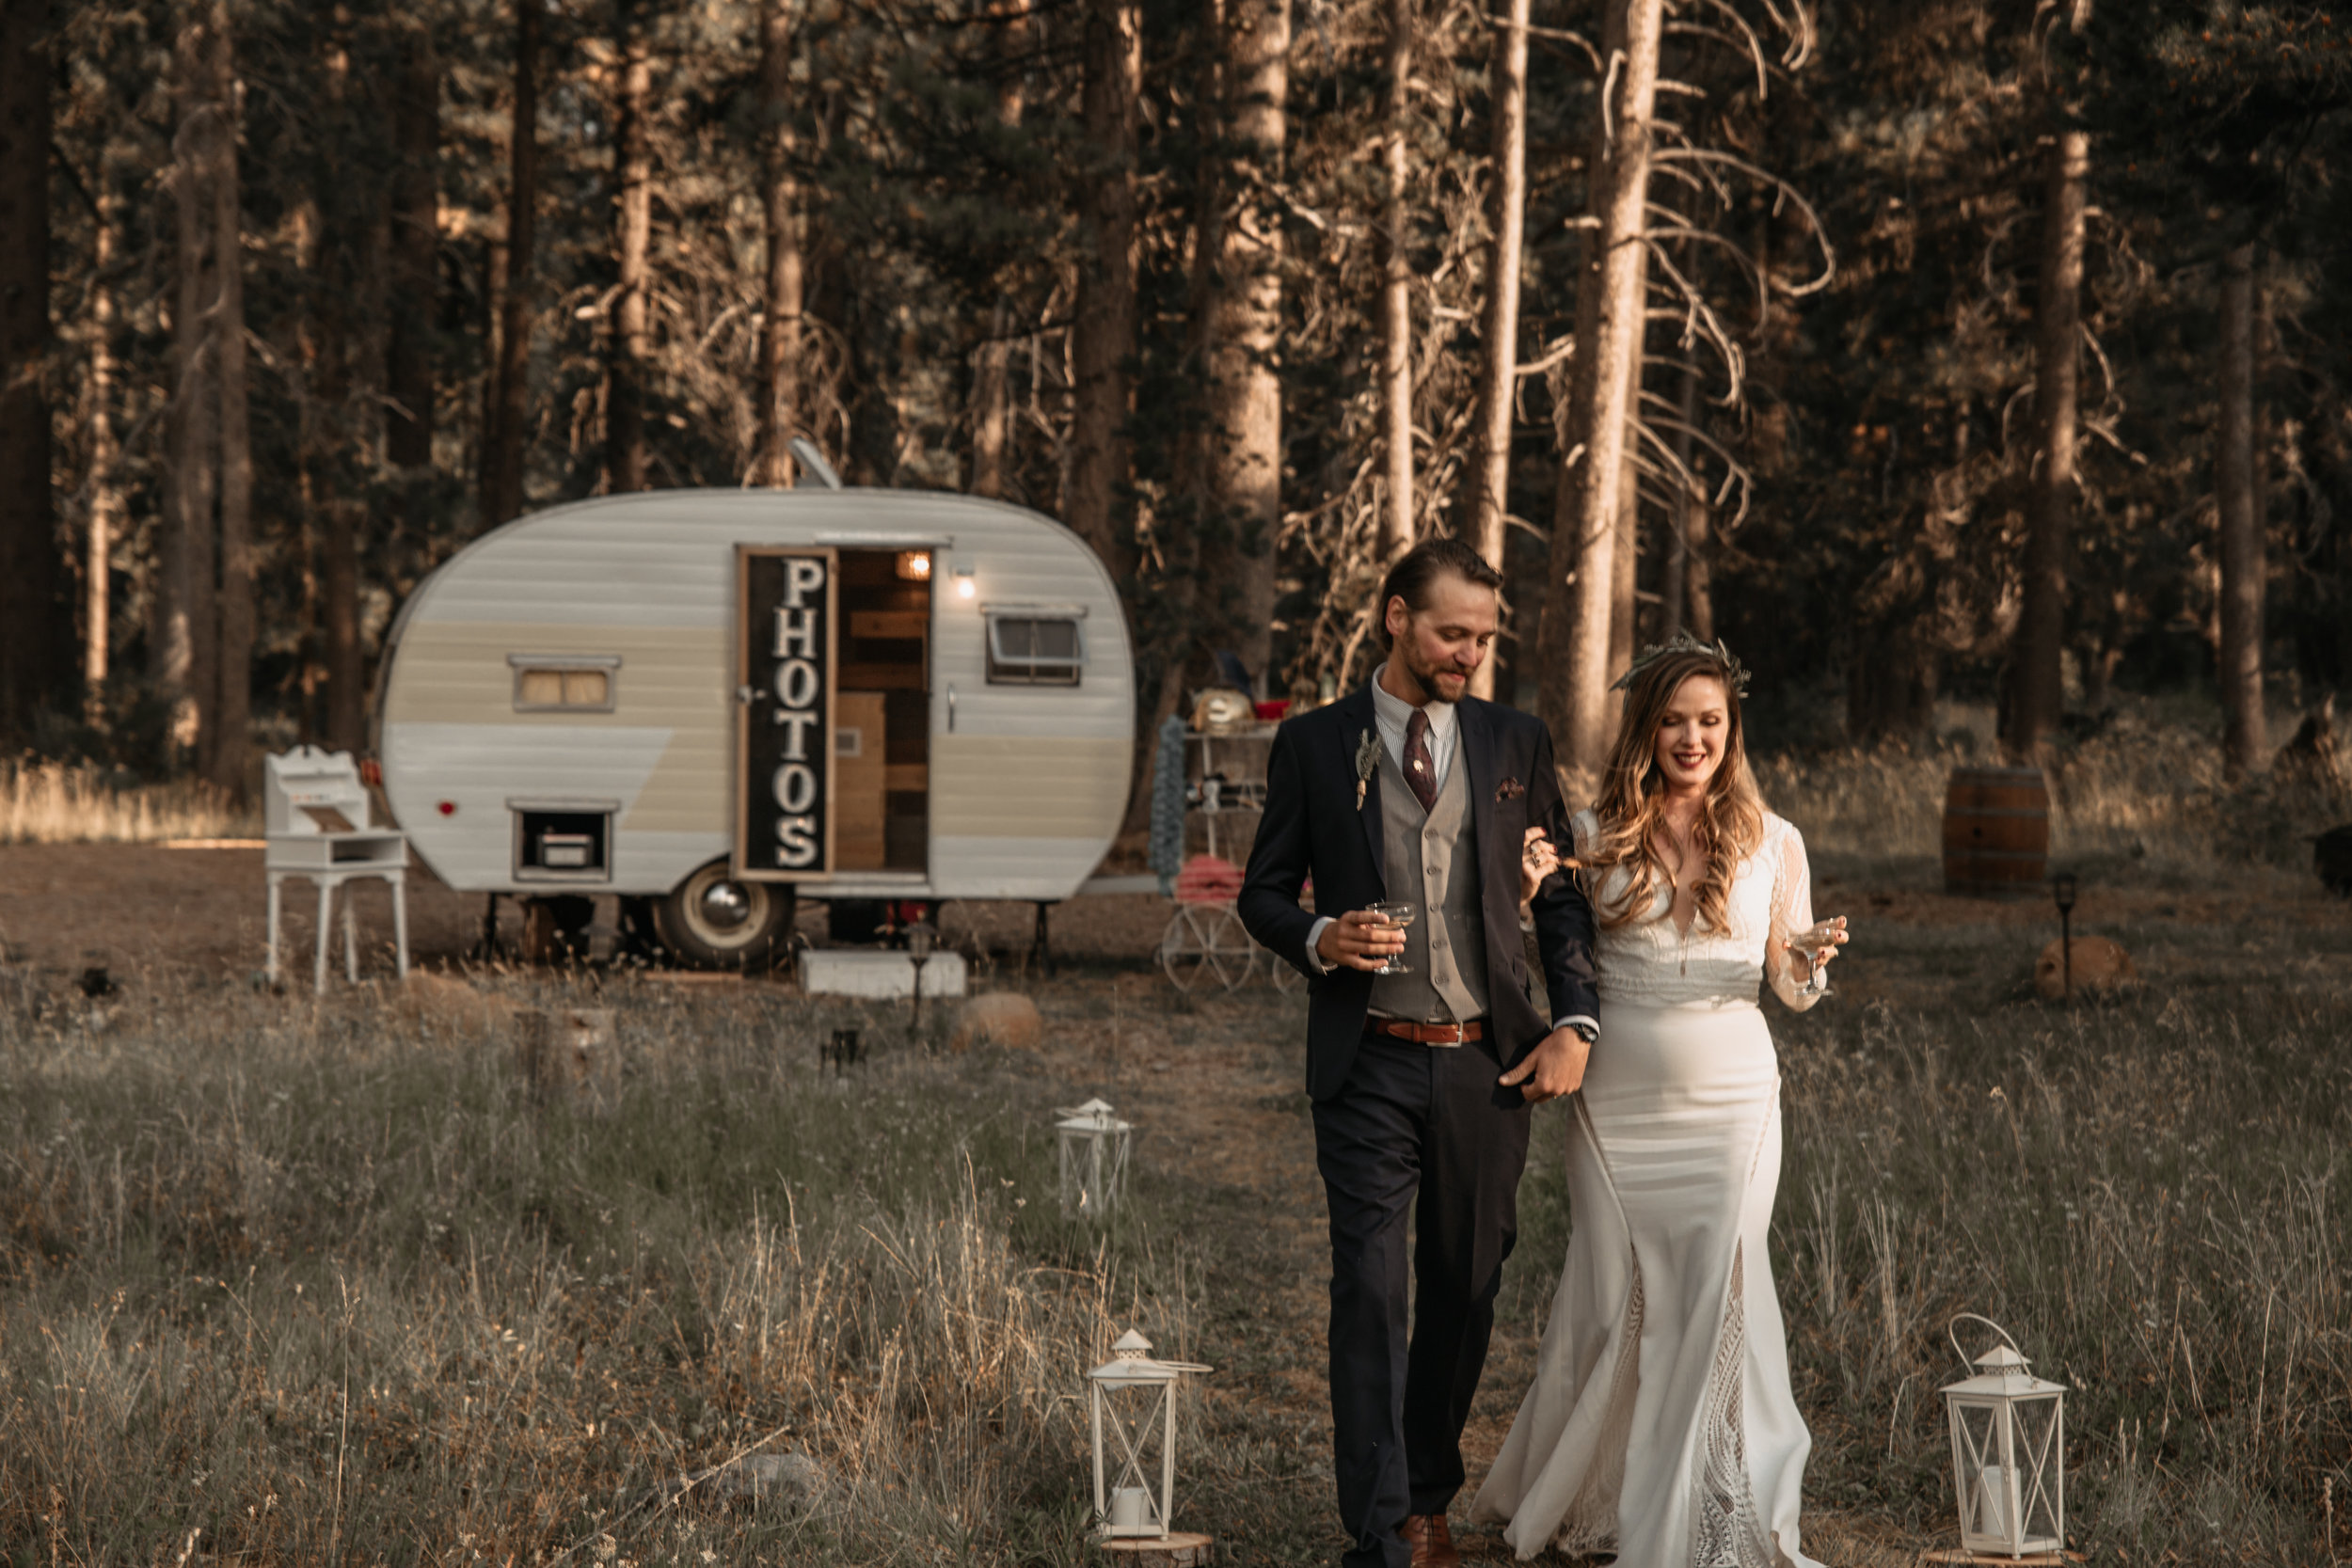 Vintage Camper Photo Booth | Tahoe | Truckee | Santa Cruz